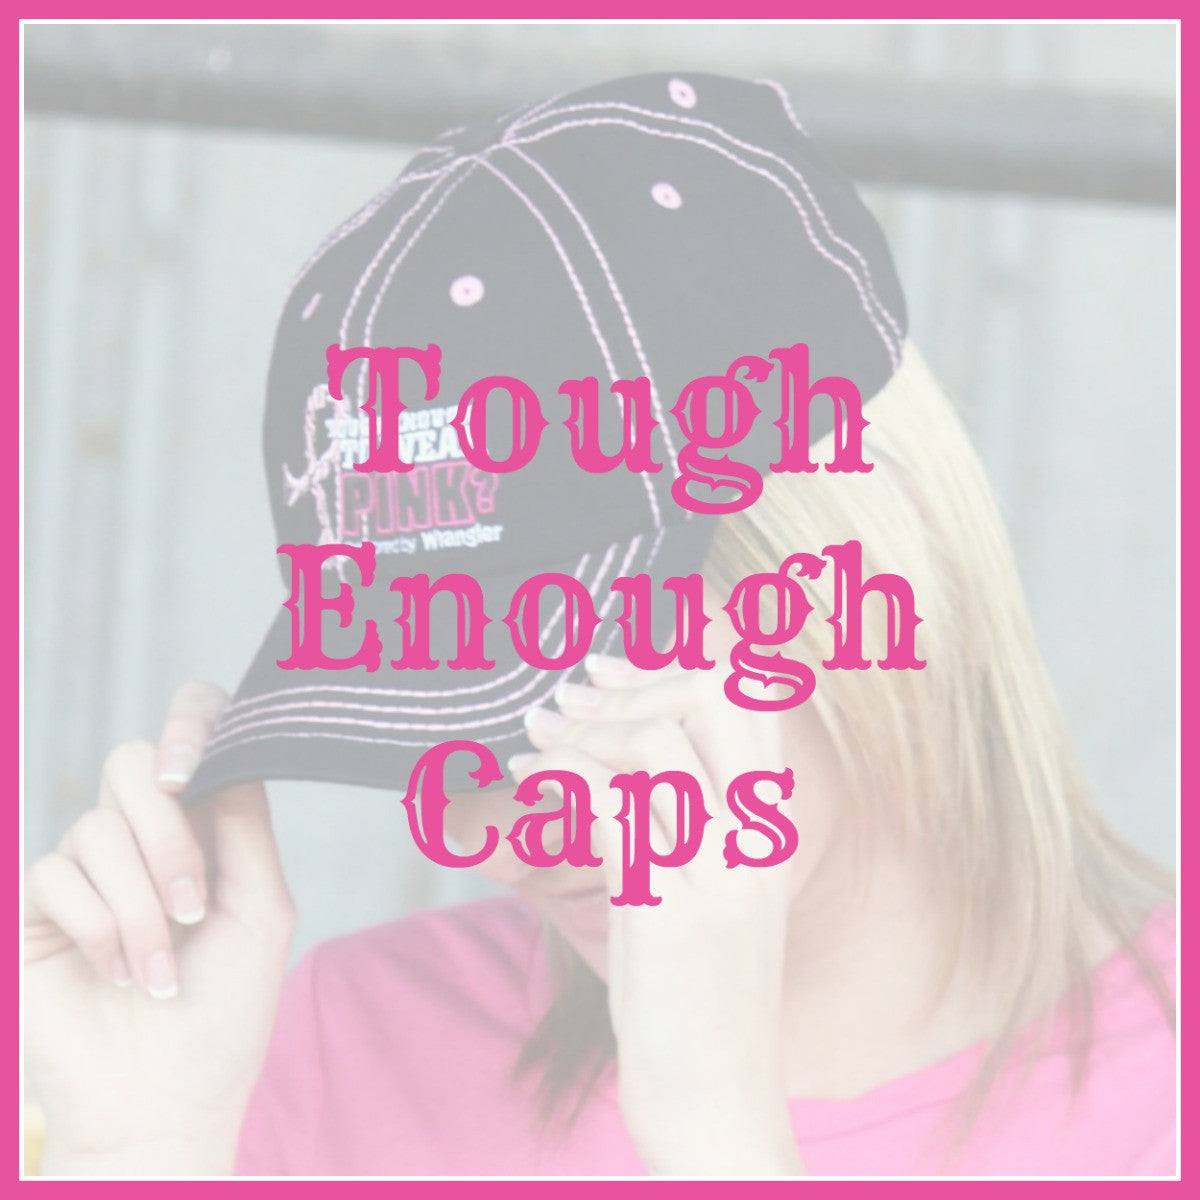 Tough Enough Caps